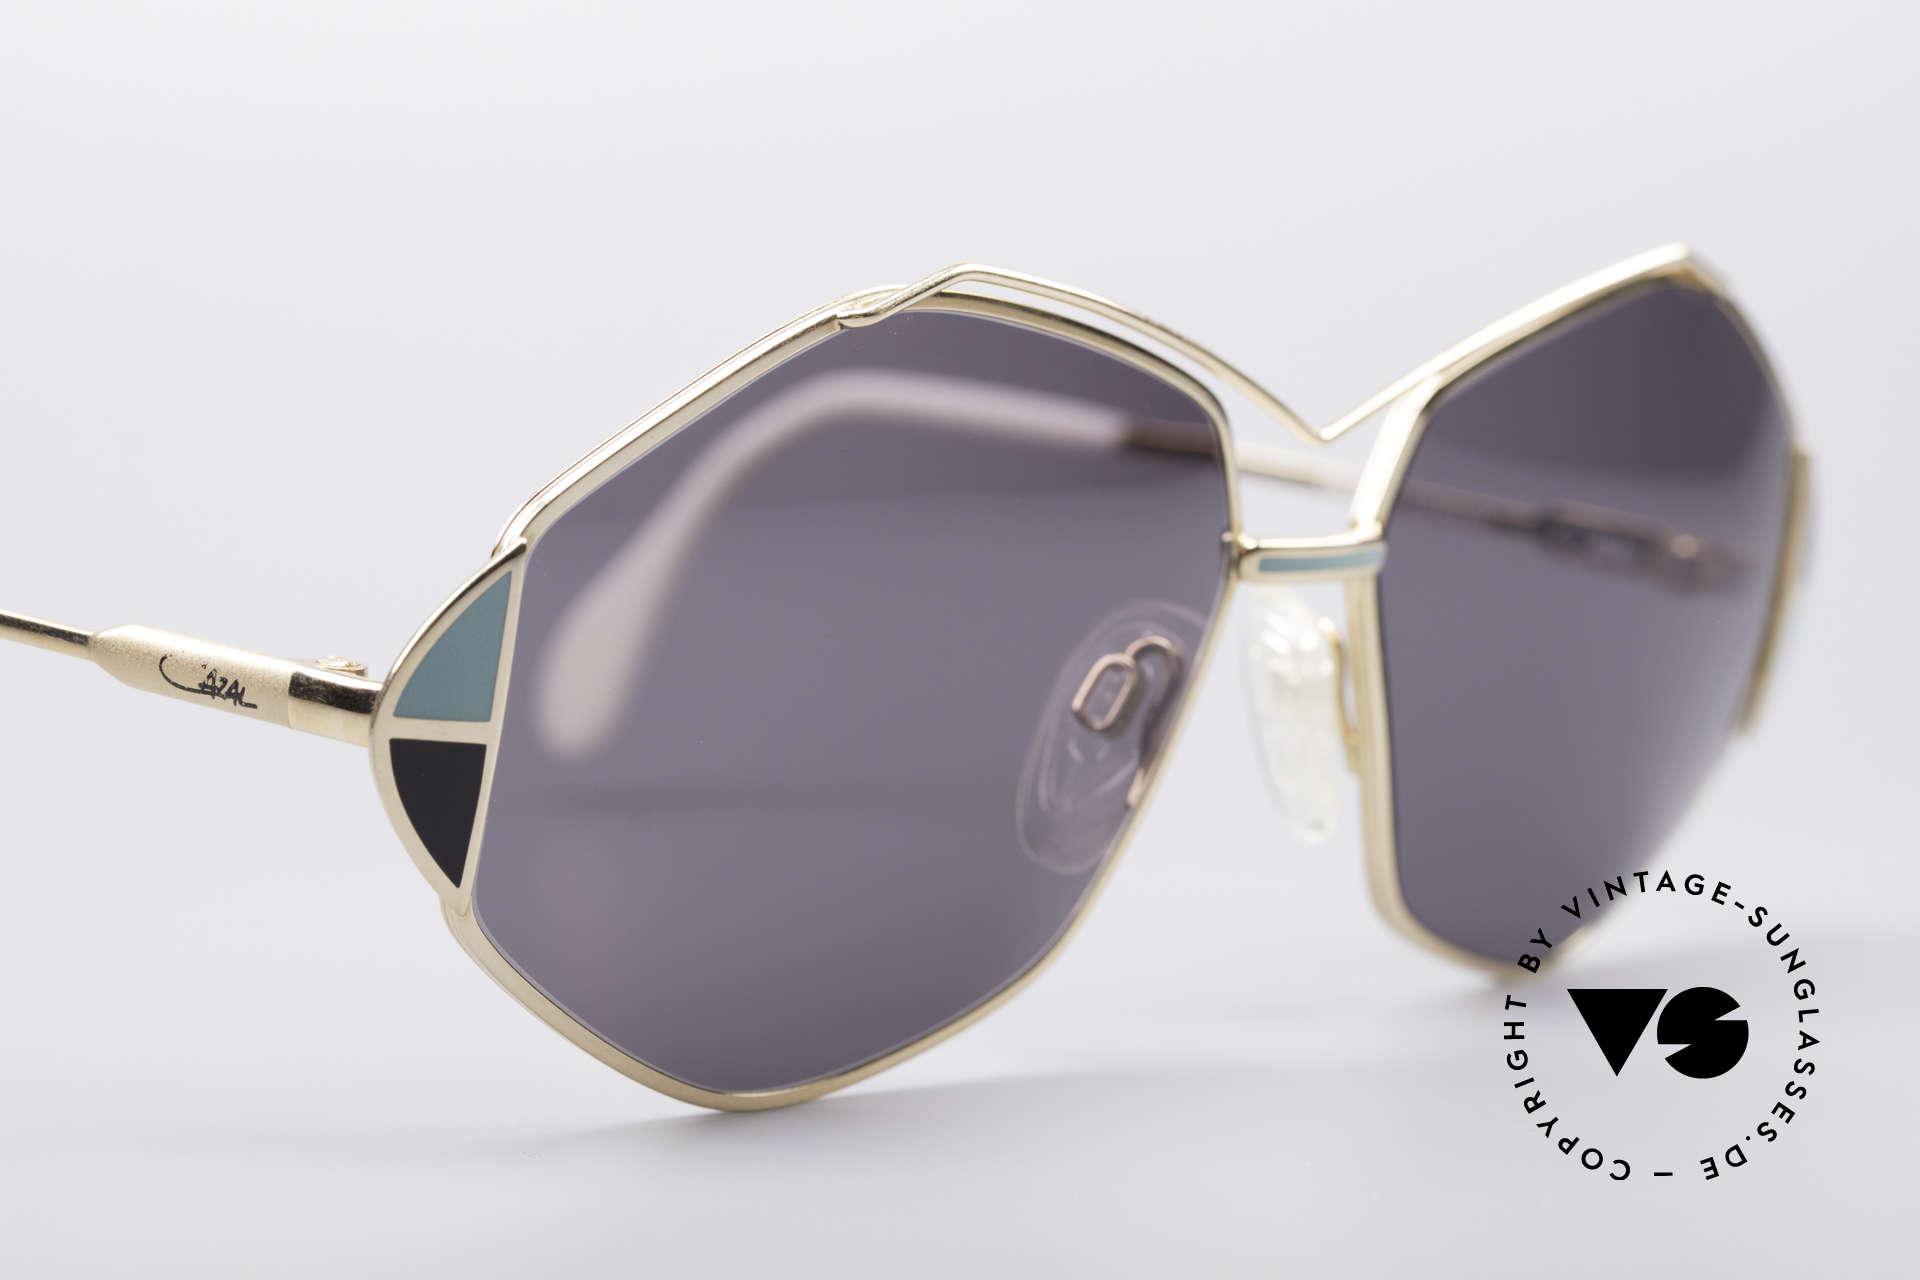 Cazal 233 Vintage West Germany Shades, NO RETRO fashion, but a rare old 80's ORIGINAL, Made for Women